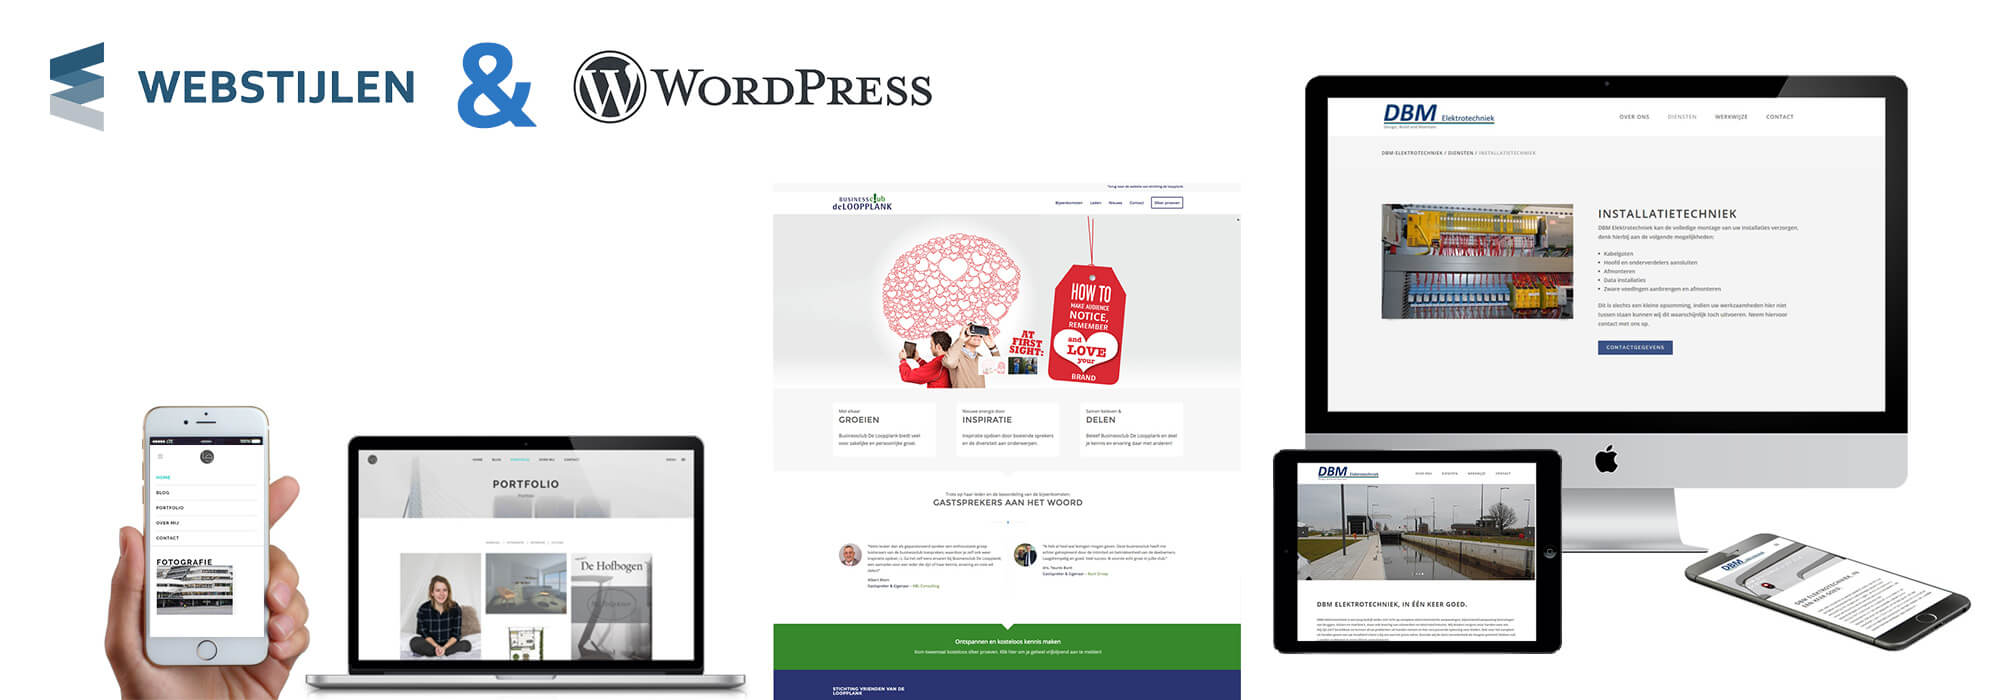 Webstijlen & WordPress